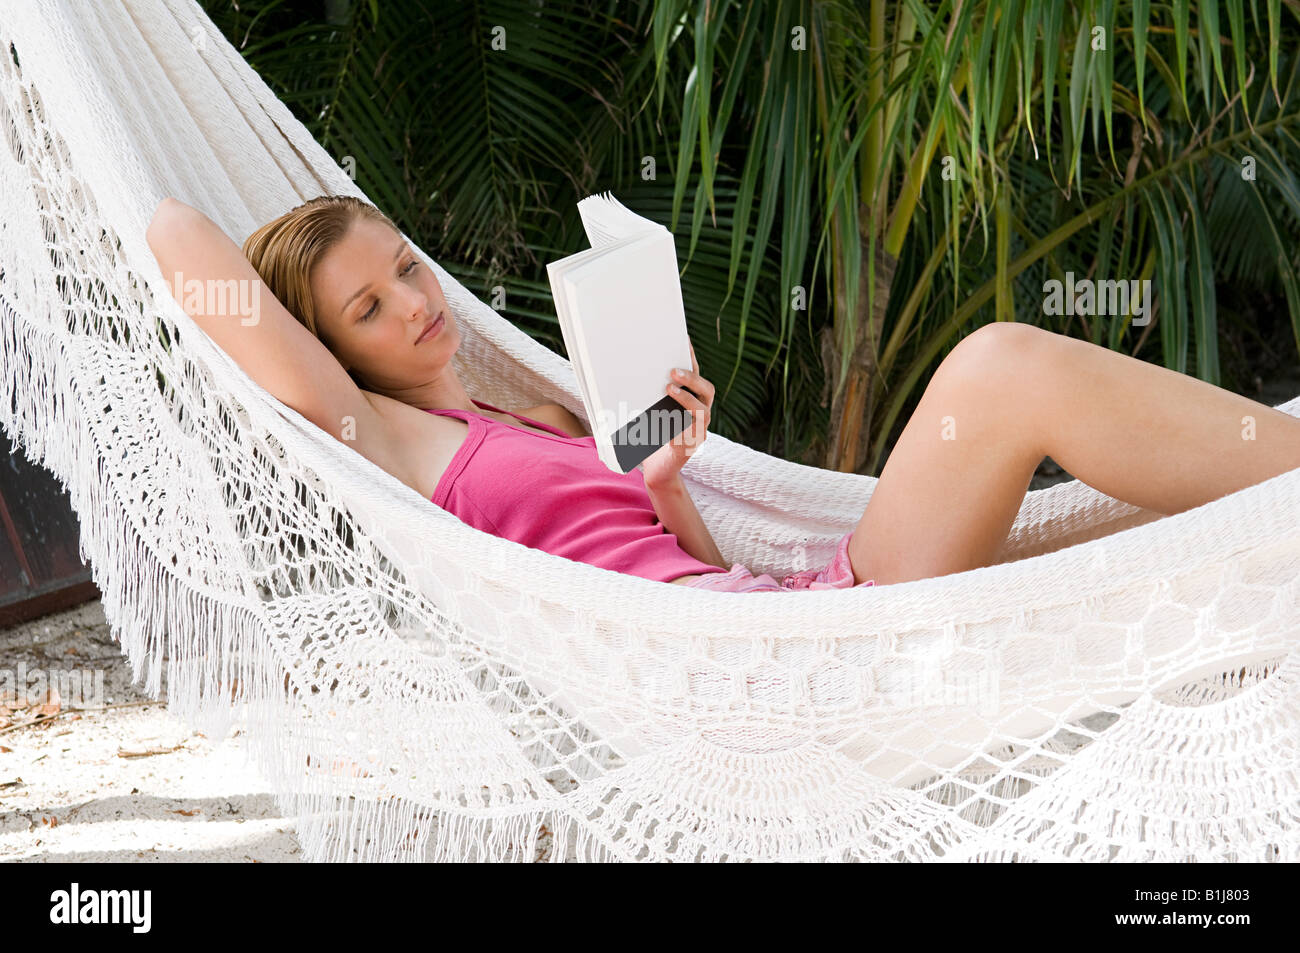 A woman in a hammock reading a book - Stock Image